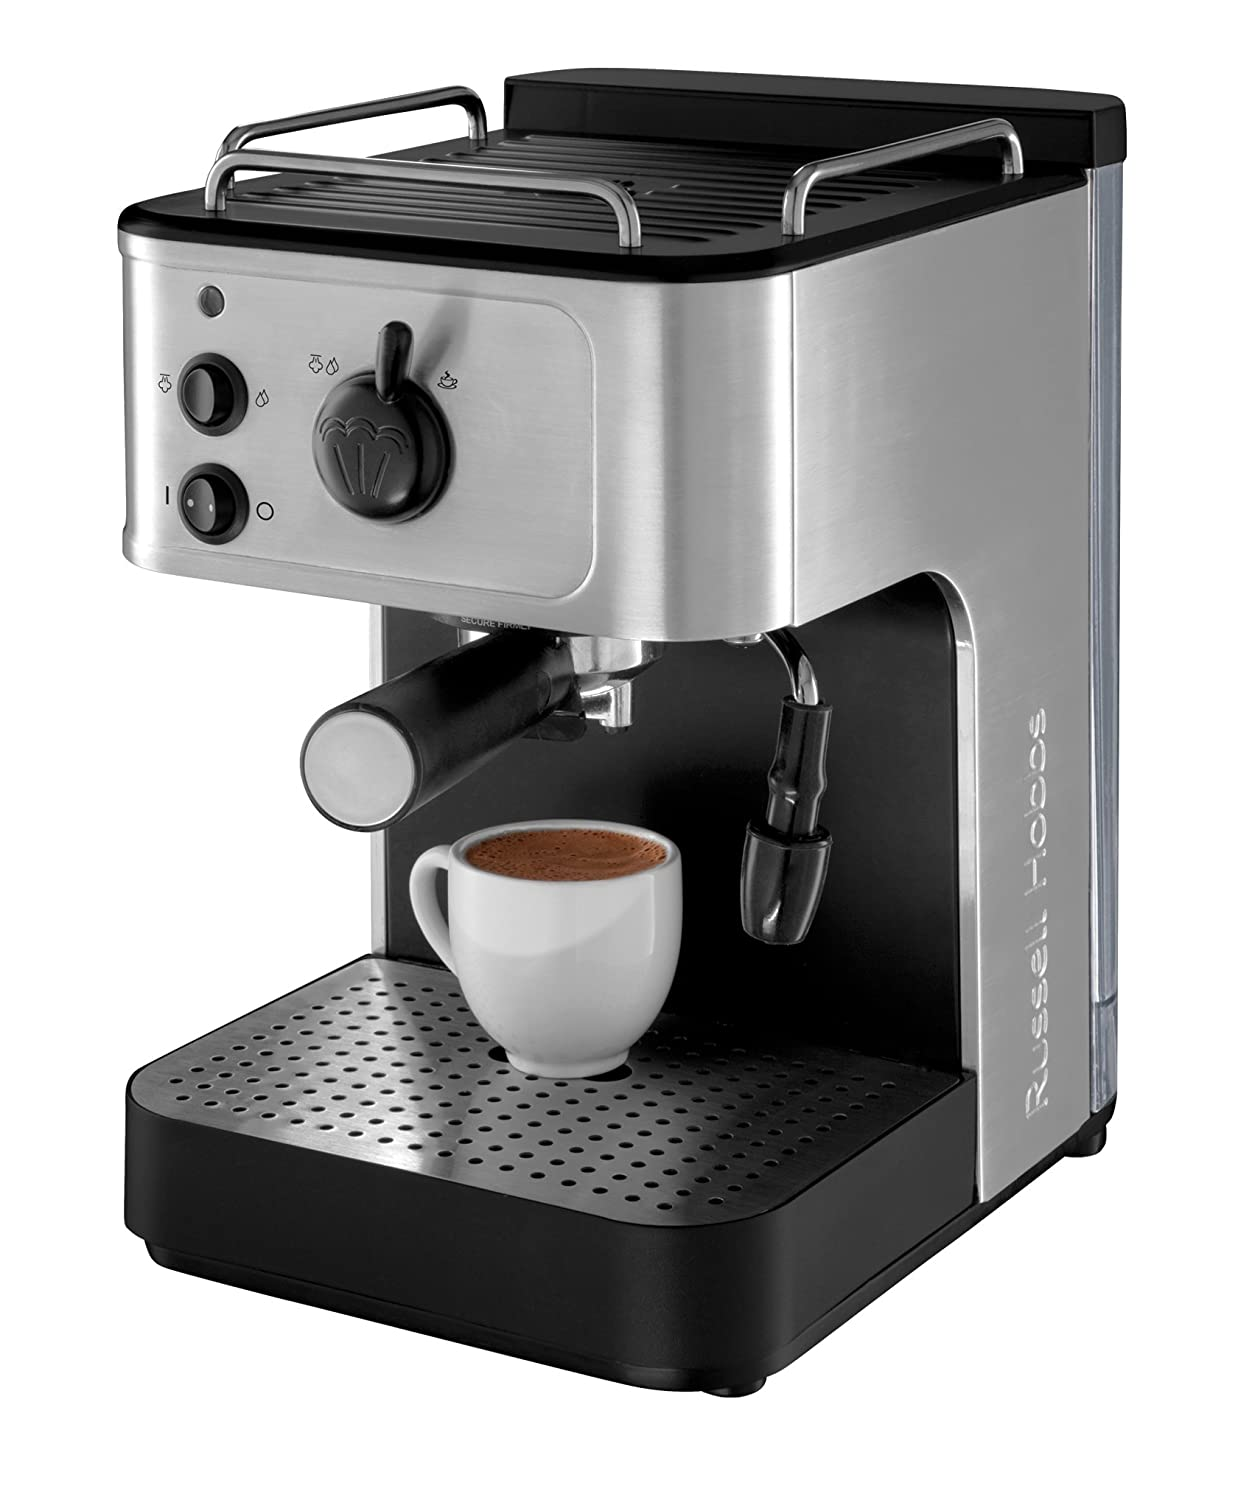 Electronic Coffee Machine Home russell hobbs 18623 espresso coffee maker amazon co uk kitchen home